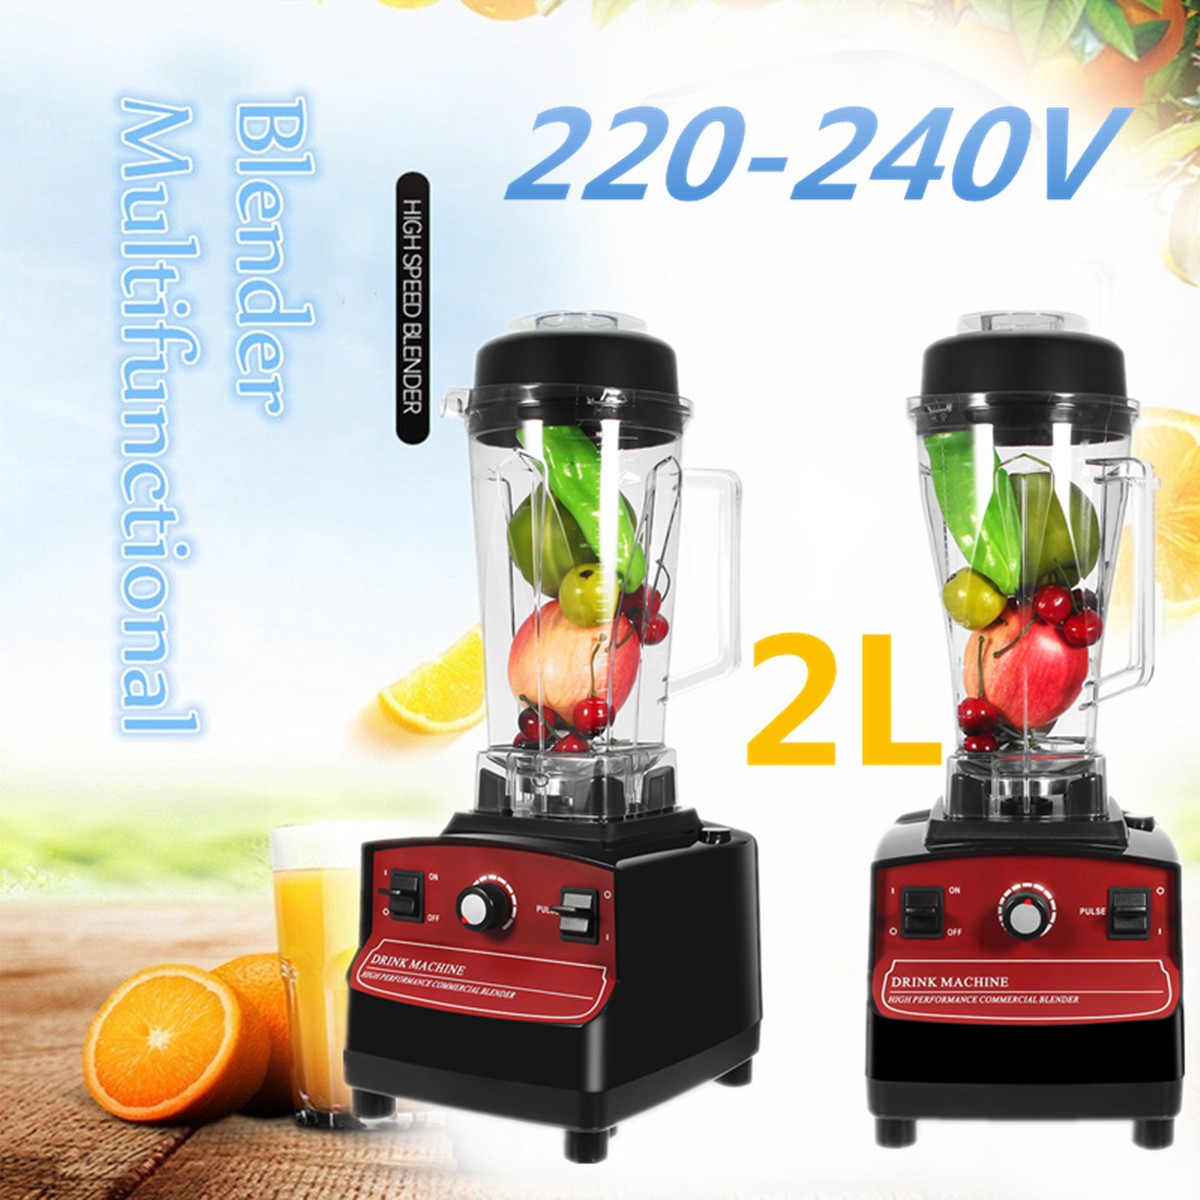 AU/EU Plug Commercial-Blender 2L 1200W 220-240V Fruit Smoothie Mixer Juicer Machine Food Processor Stainless Steel Cutting купить в Москве 2019